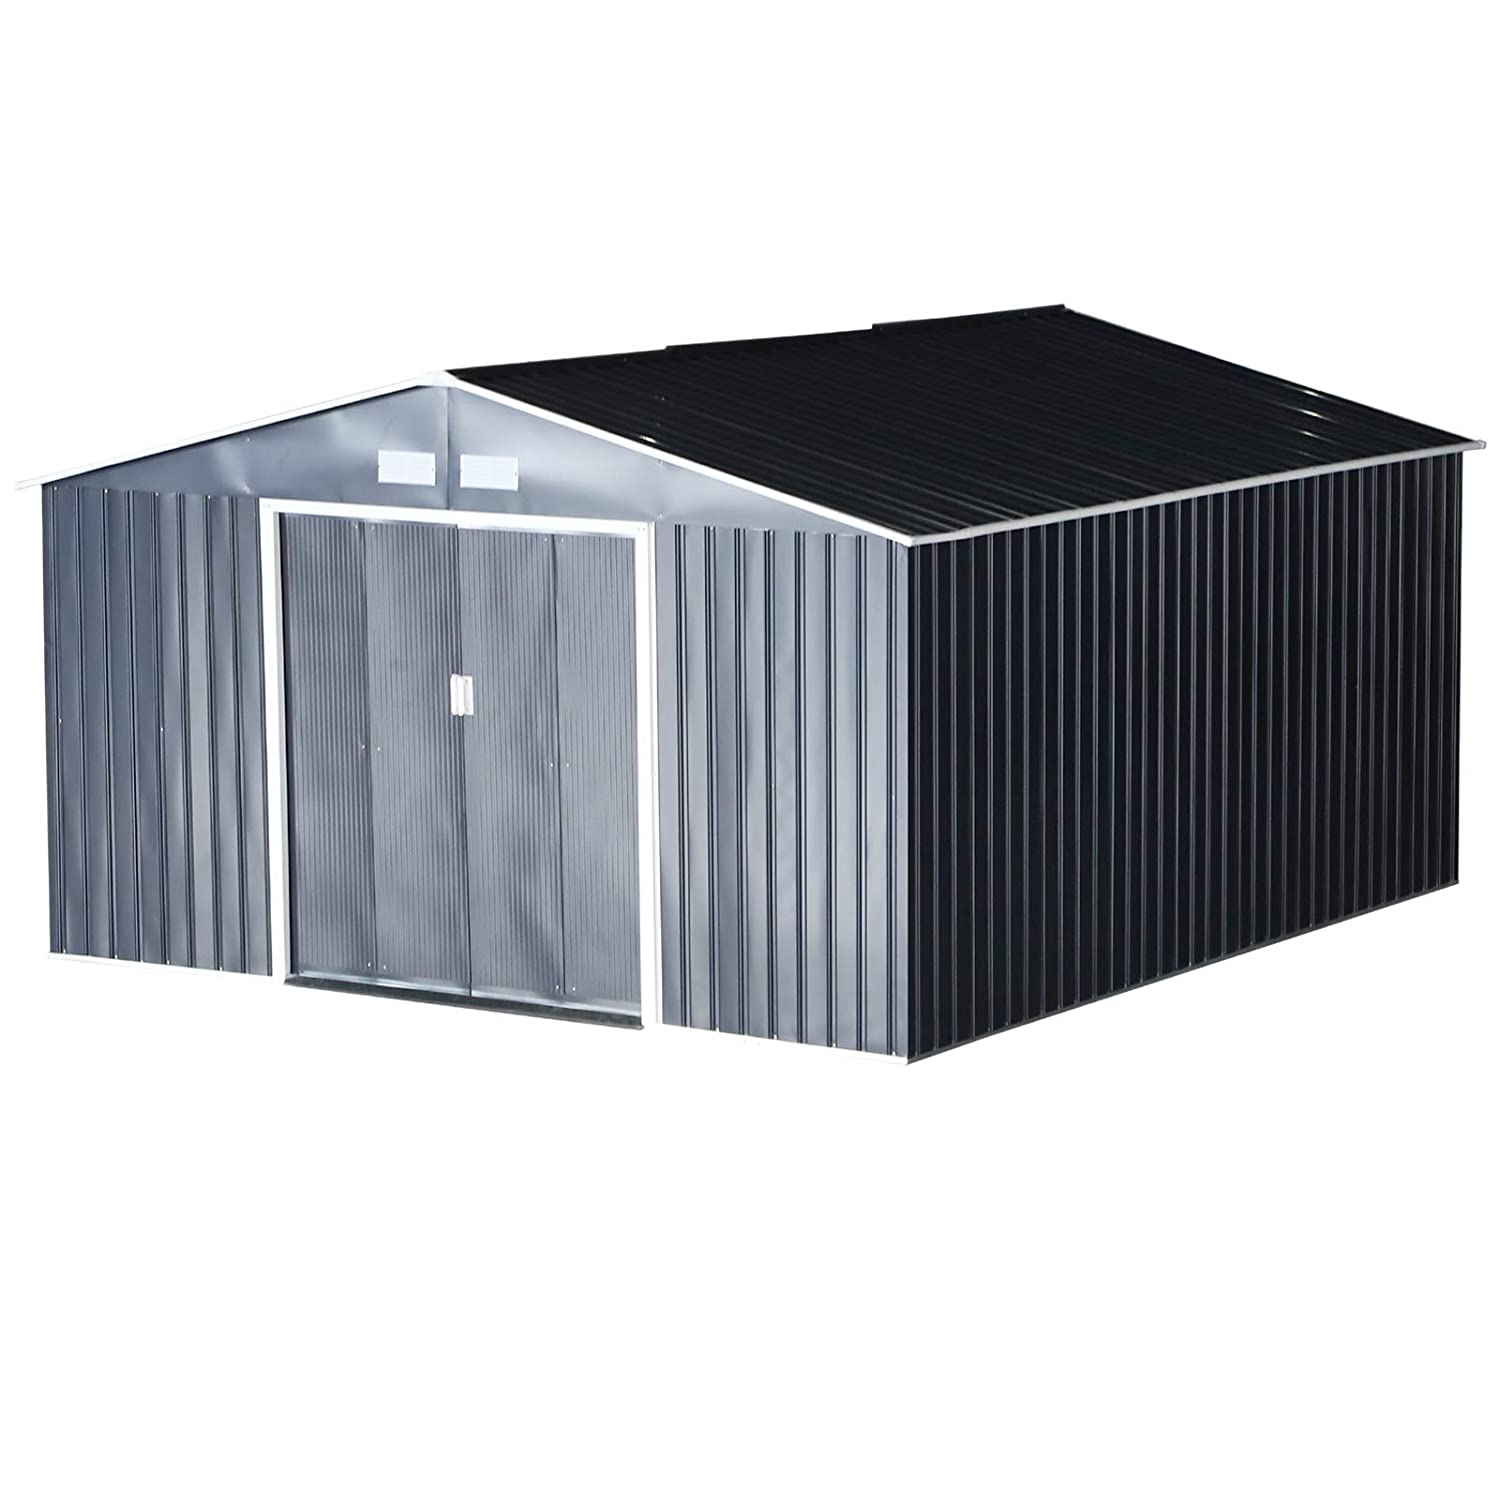 Outsunny Metal Garden Shed Utility Tool Storage 11' x 12.5' Outdoor for Backyard and Garden - Grey